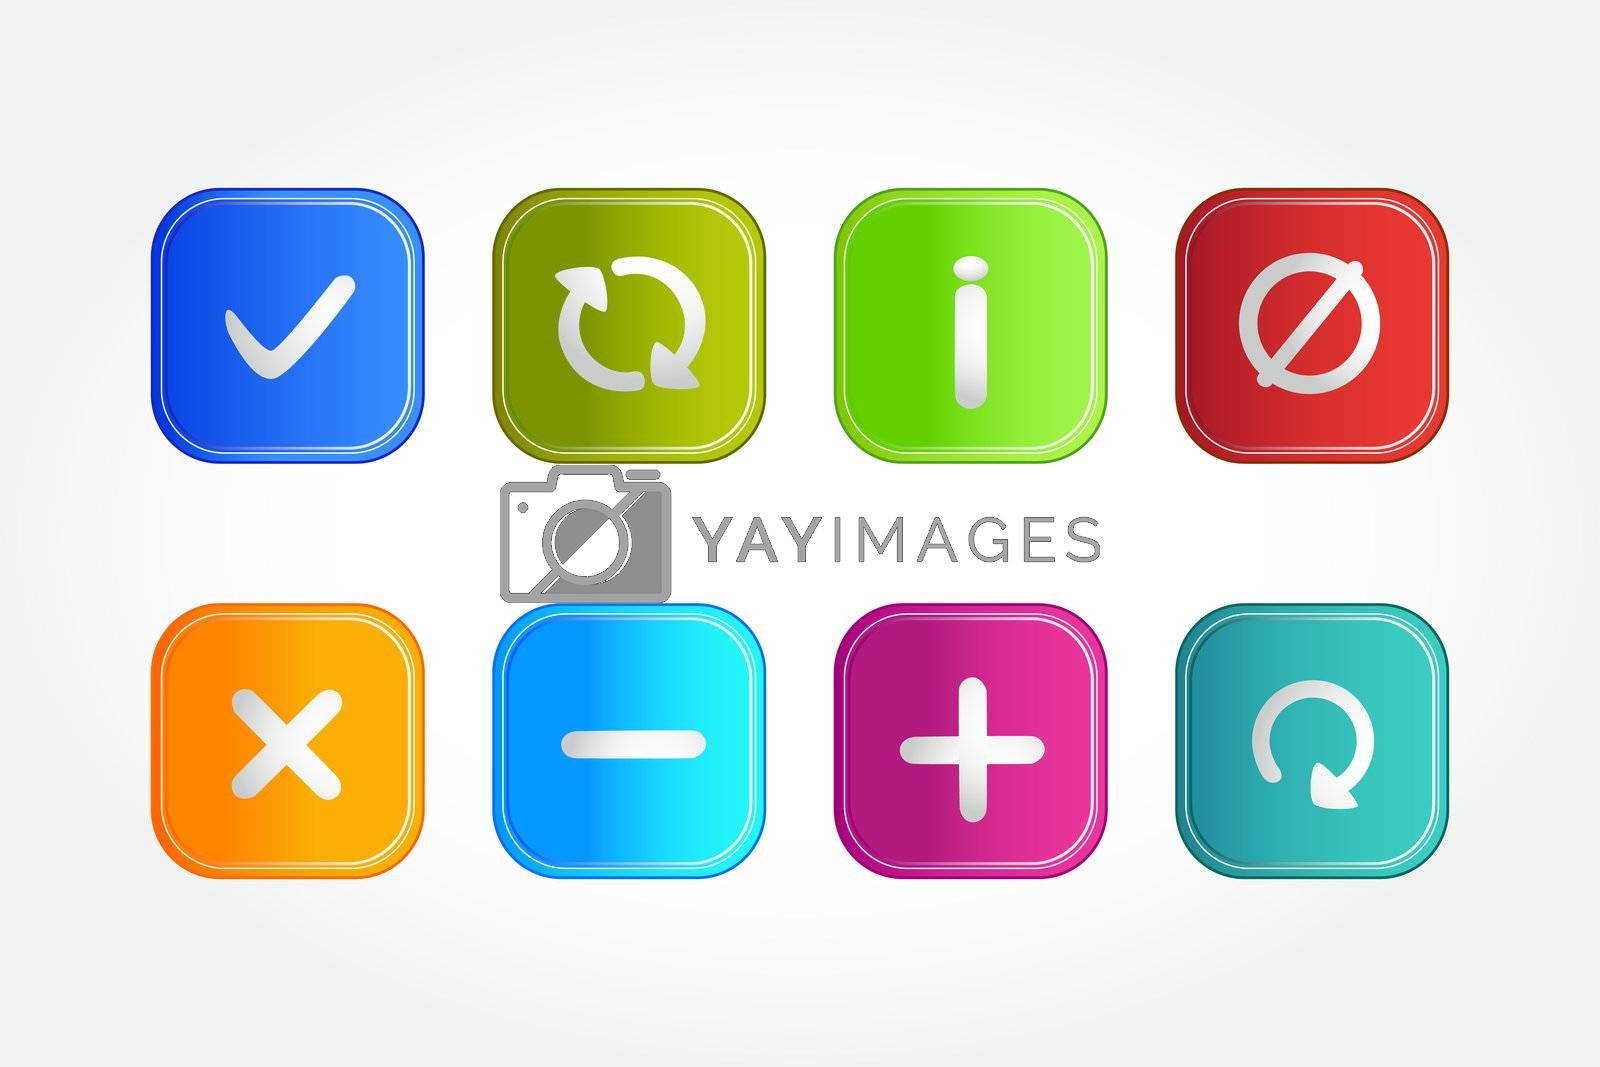 illustration of symbolic buttons on white background